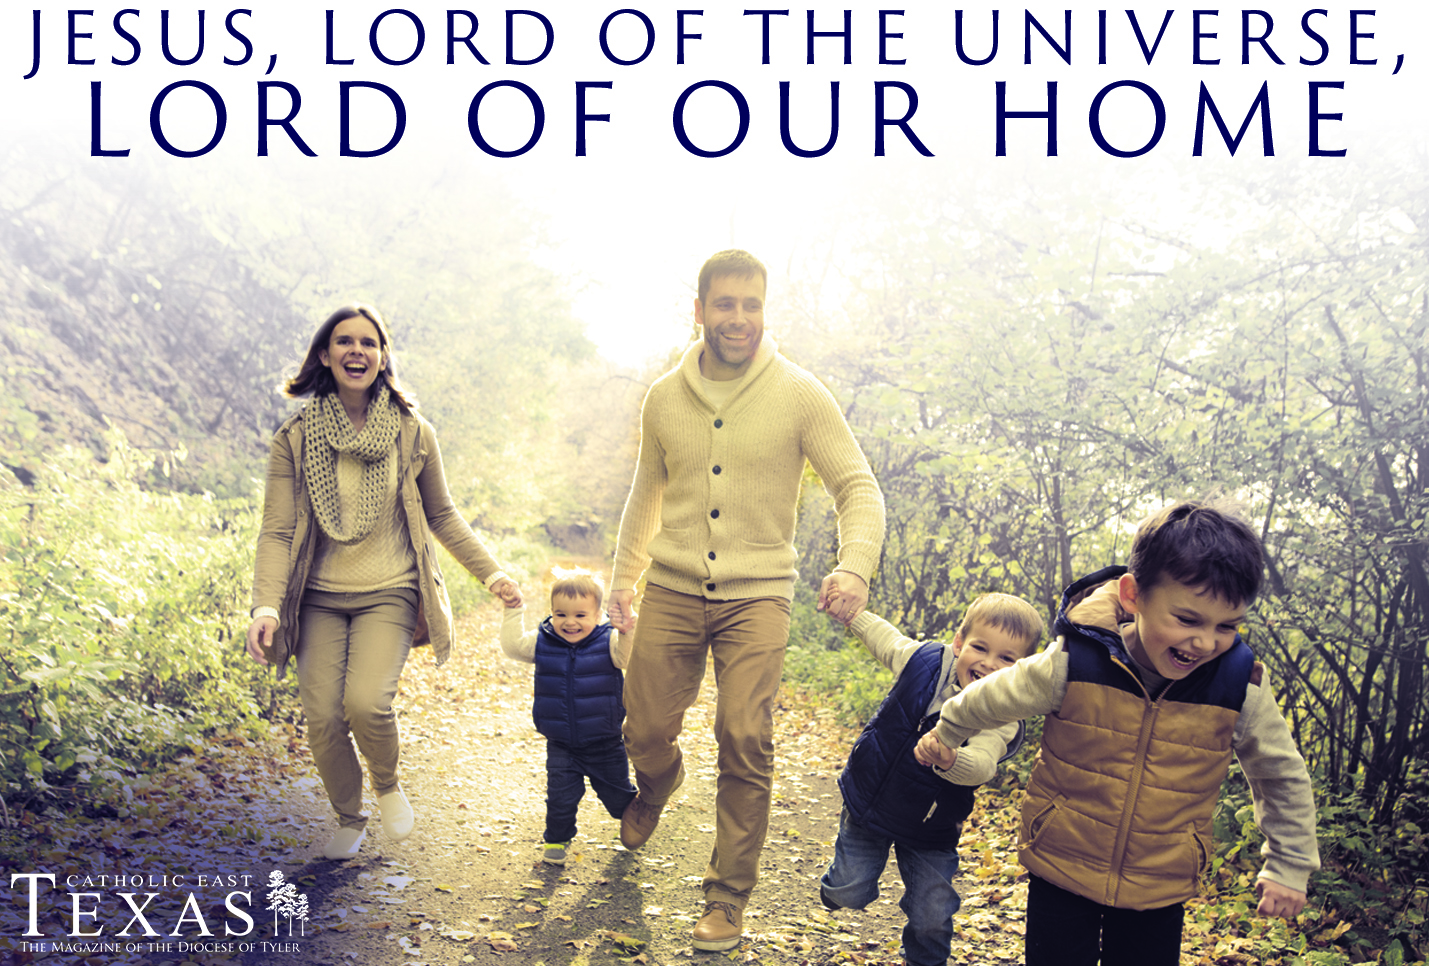 Jesus, Lord of the Universe, Lord of our Home